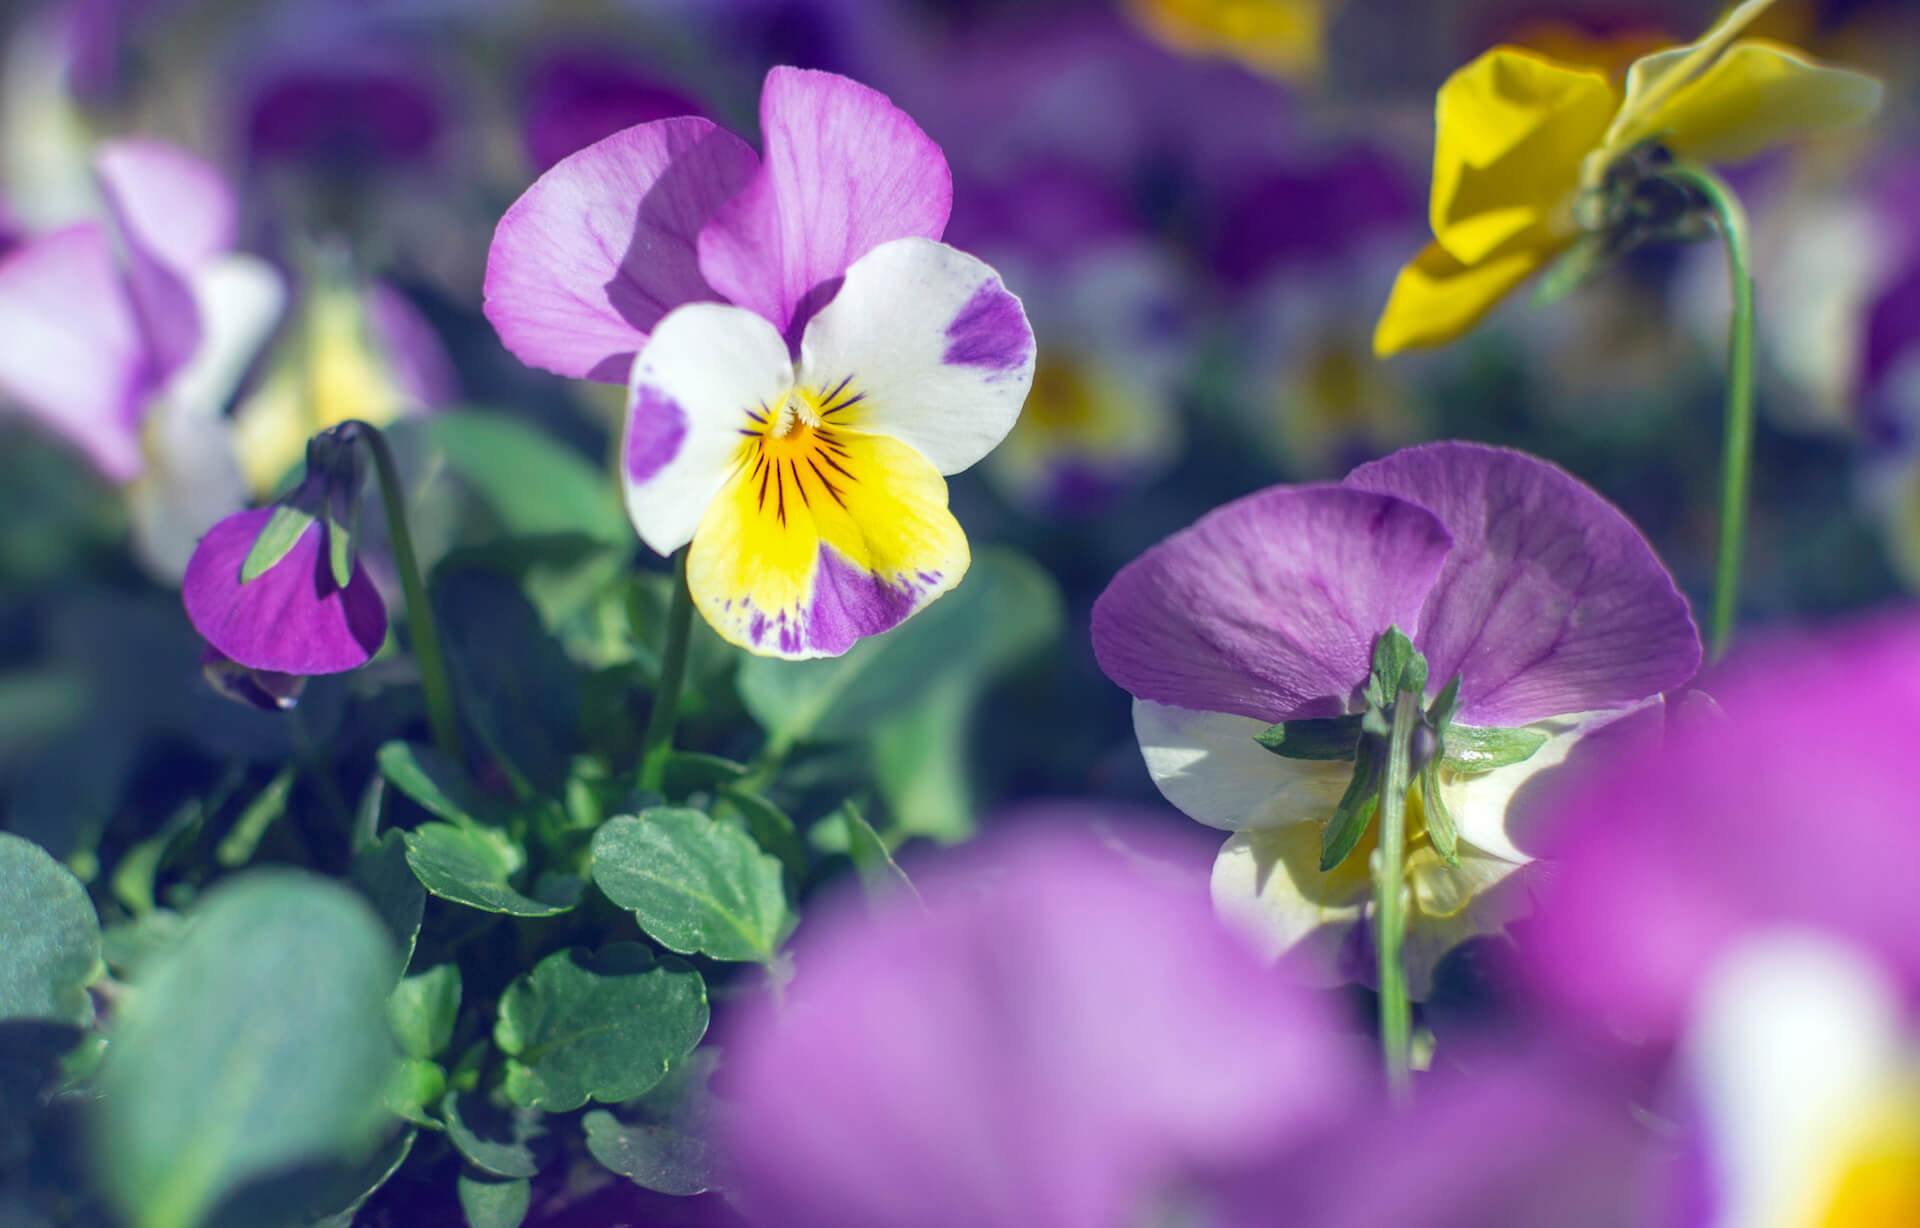 Beautiful pansy flowers growing in the garden at sunny spring day